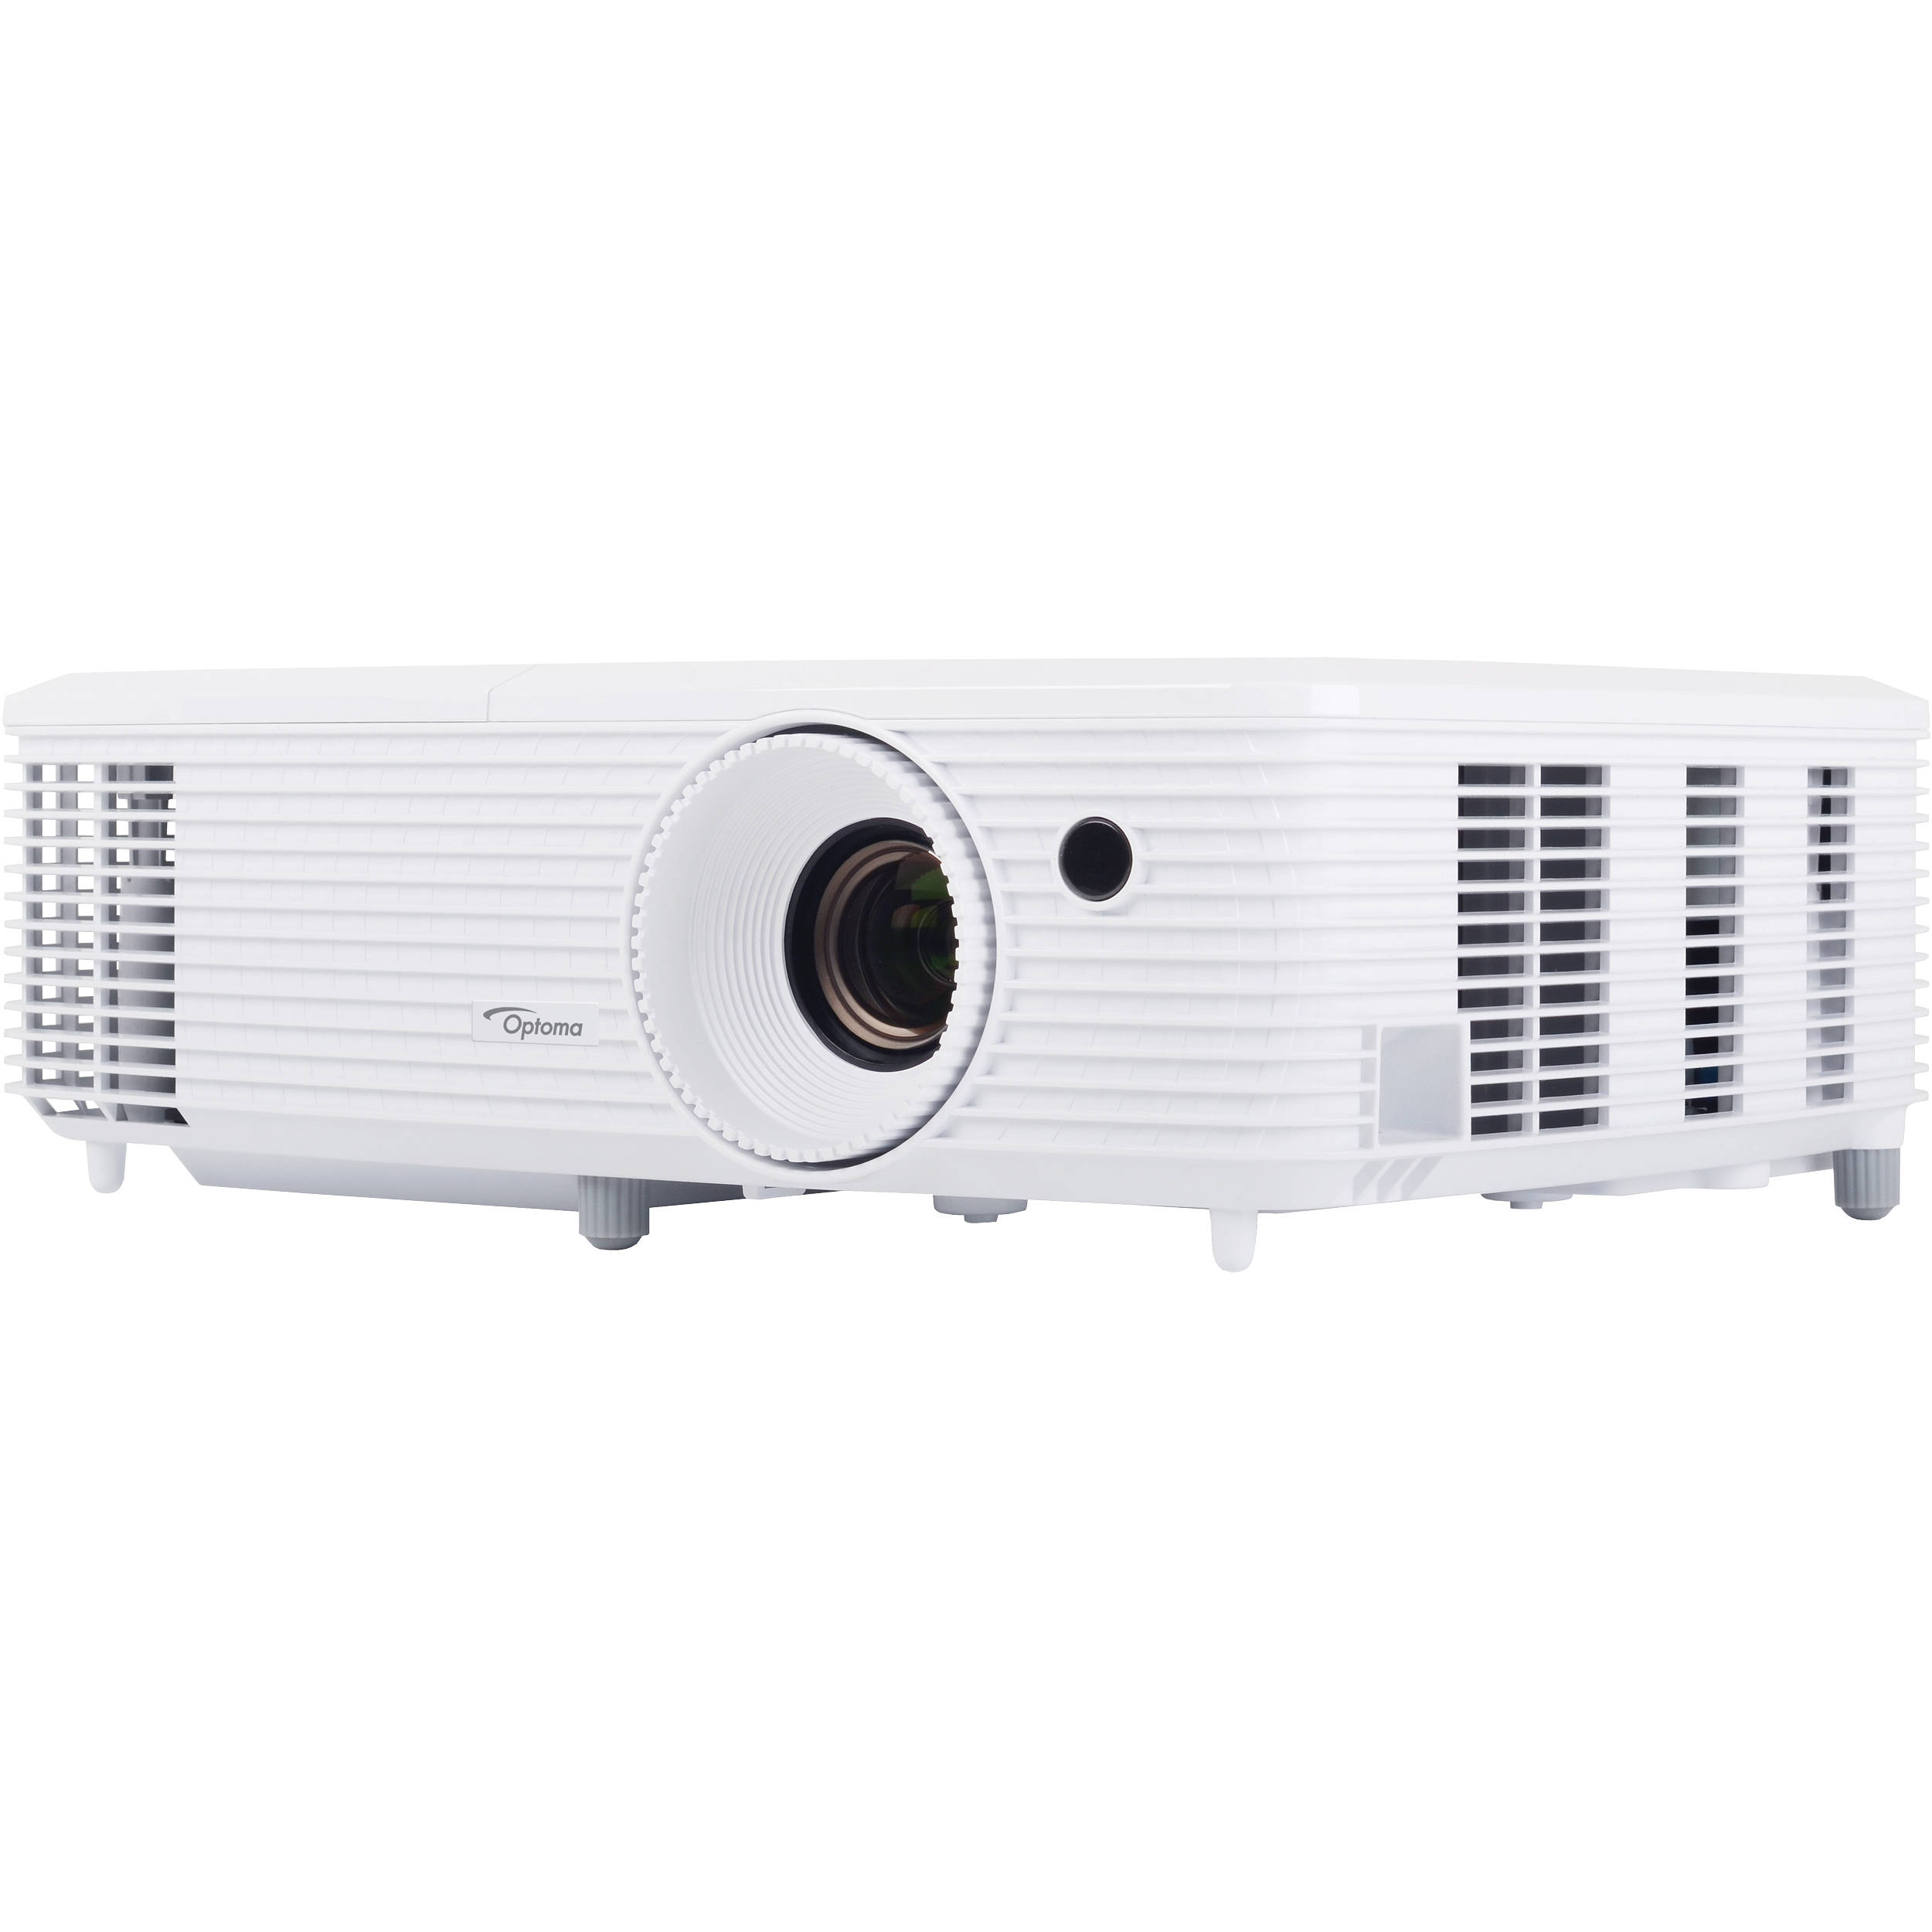 Optoma technology hd27 full hd dlp home theater projector hd27 for Hd projector